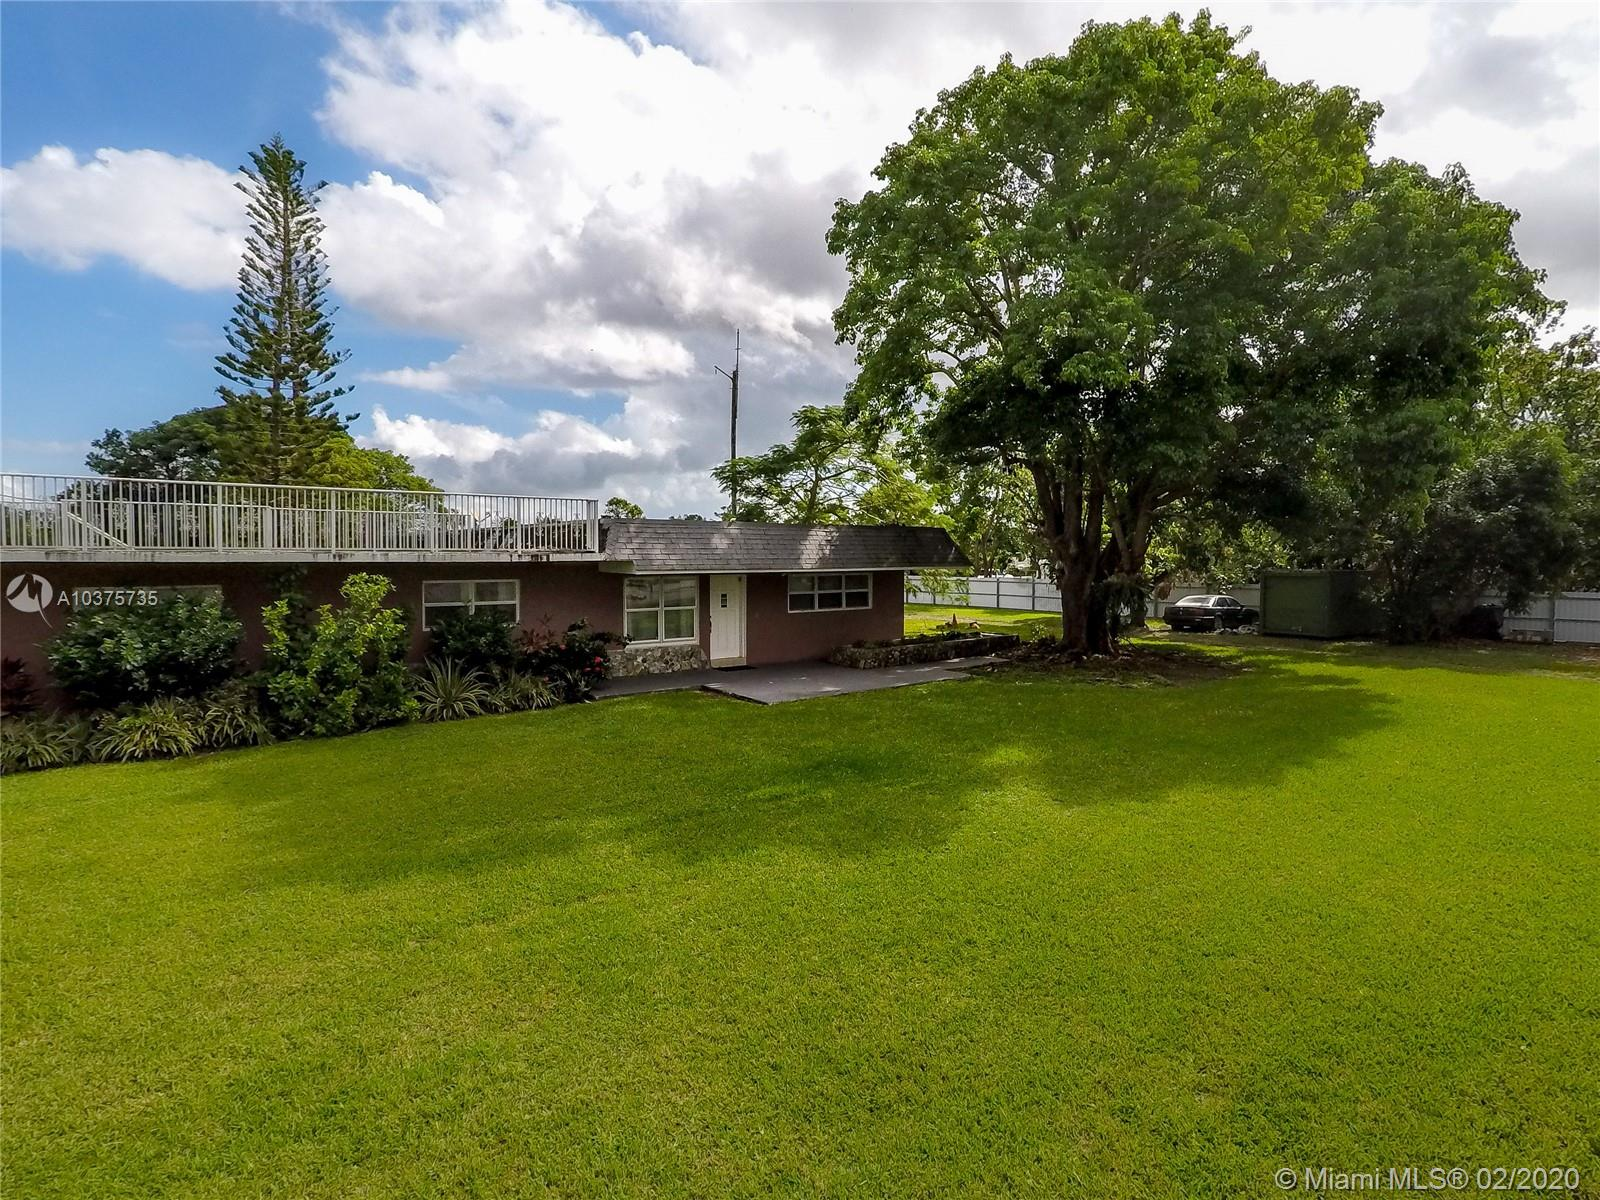 24201 SW 124th Ave, Homestead, FL 33032